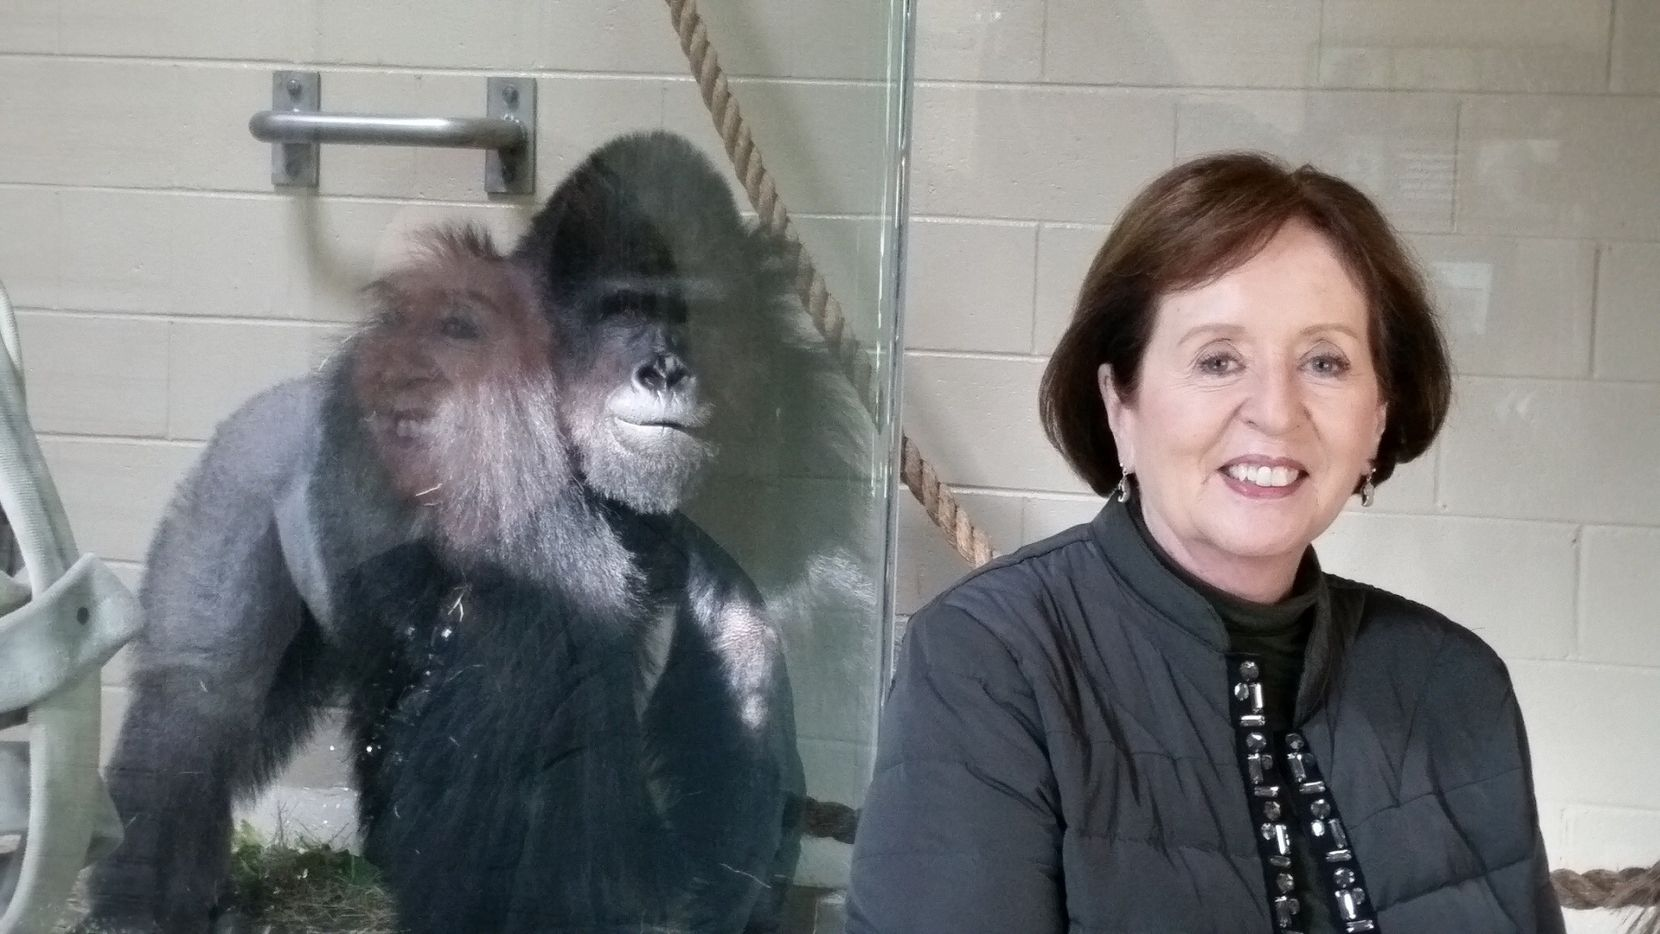 Julie Evans poses in front of Patrick the gorilla at the Riverbanks Zoo & Garden in Columbia, S.C., in November 2015. Evans says Patrick, who lived at the Dallas Zoo until 2013, remembered her when she visited and would sit by the window with her.